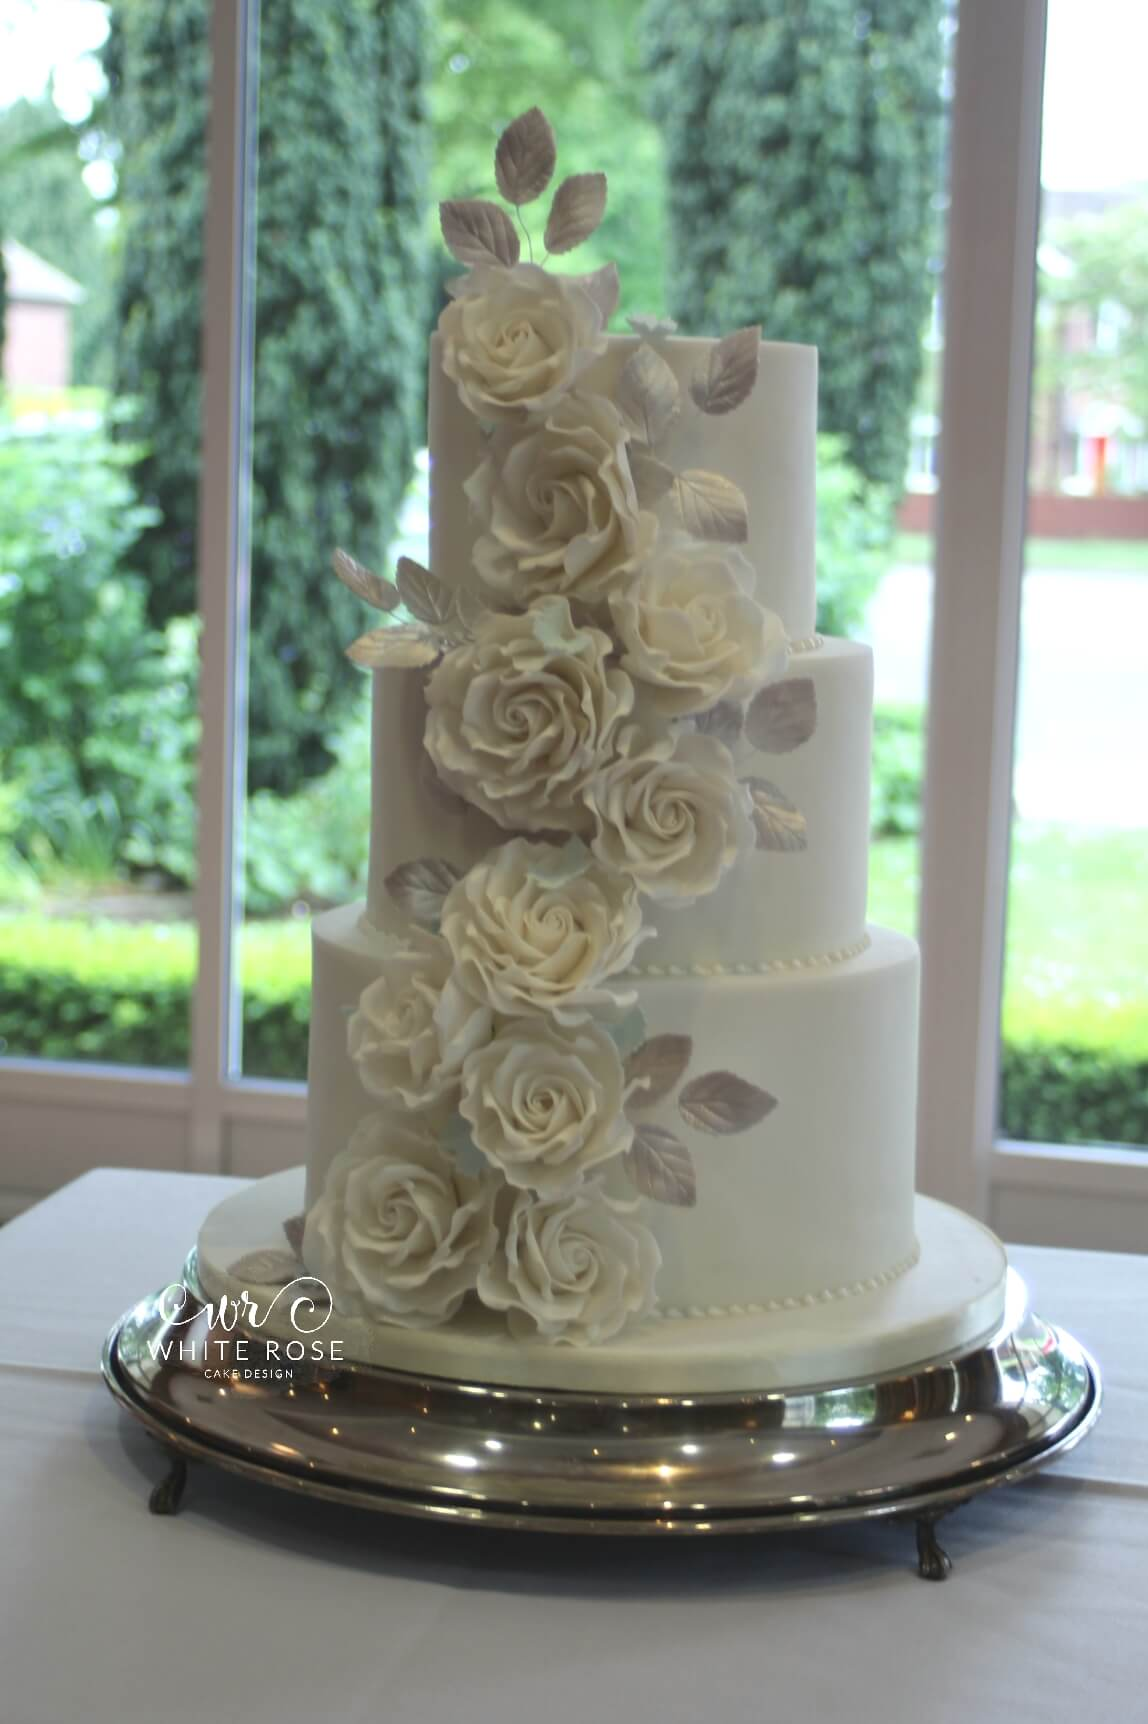 Three Tier White Rose Cascade Wedding Cake by White Rose Cake Design West Yorkshire Cake Maker